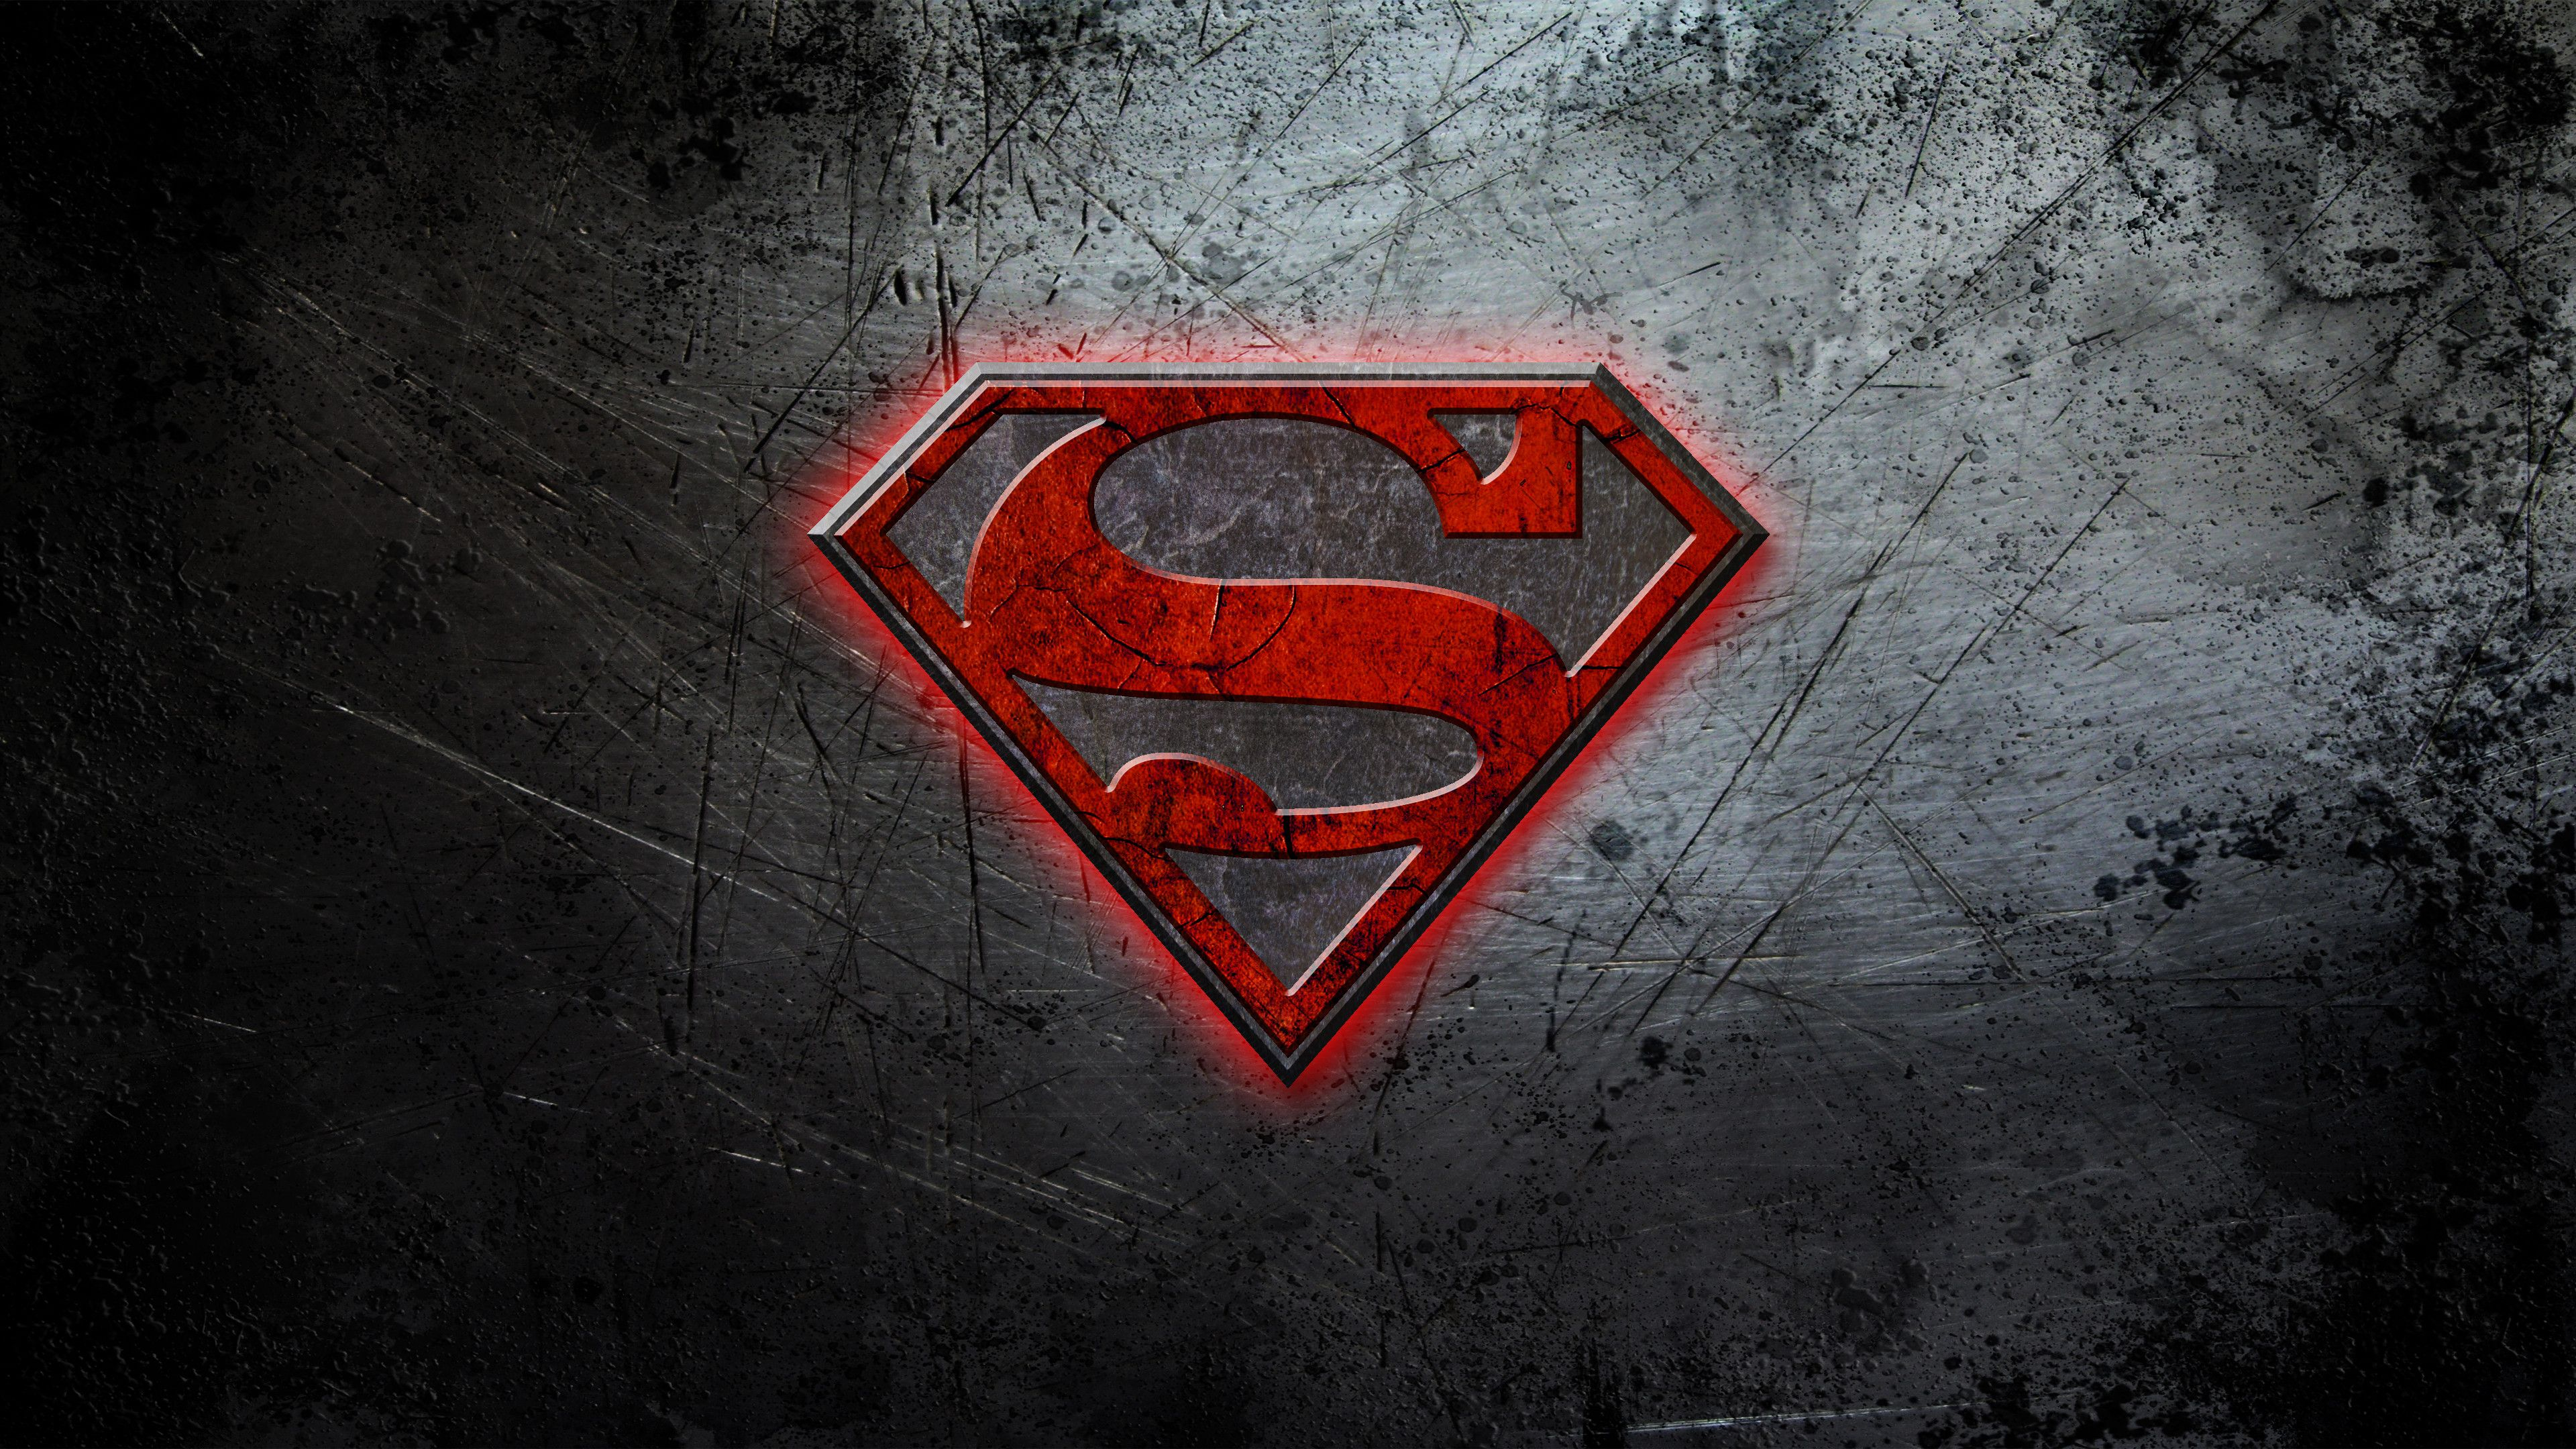 3840x2160 Superman Logo 4k, HD Superheroes, 4k Wallpapers, Images, Backgrounds ...